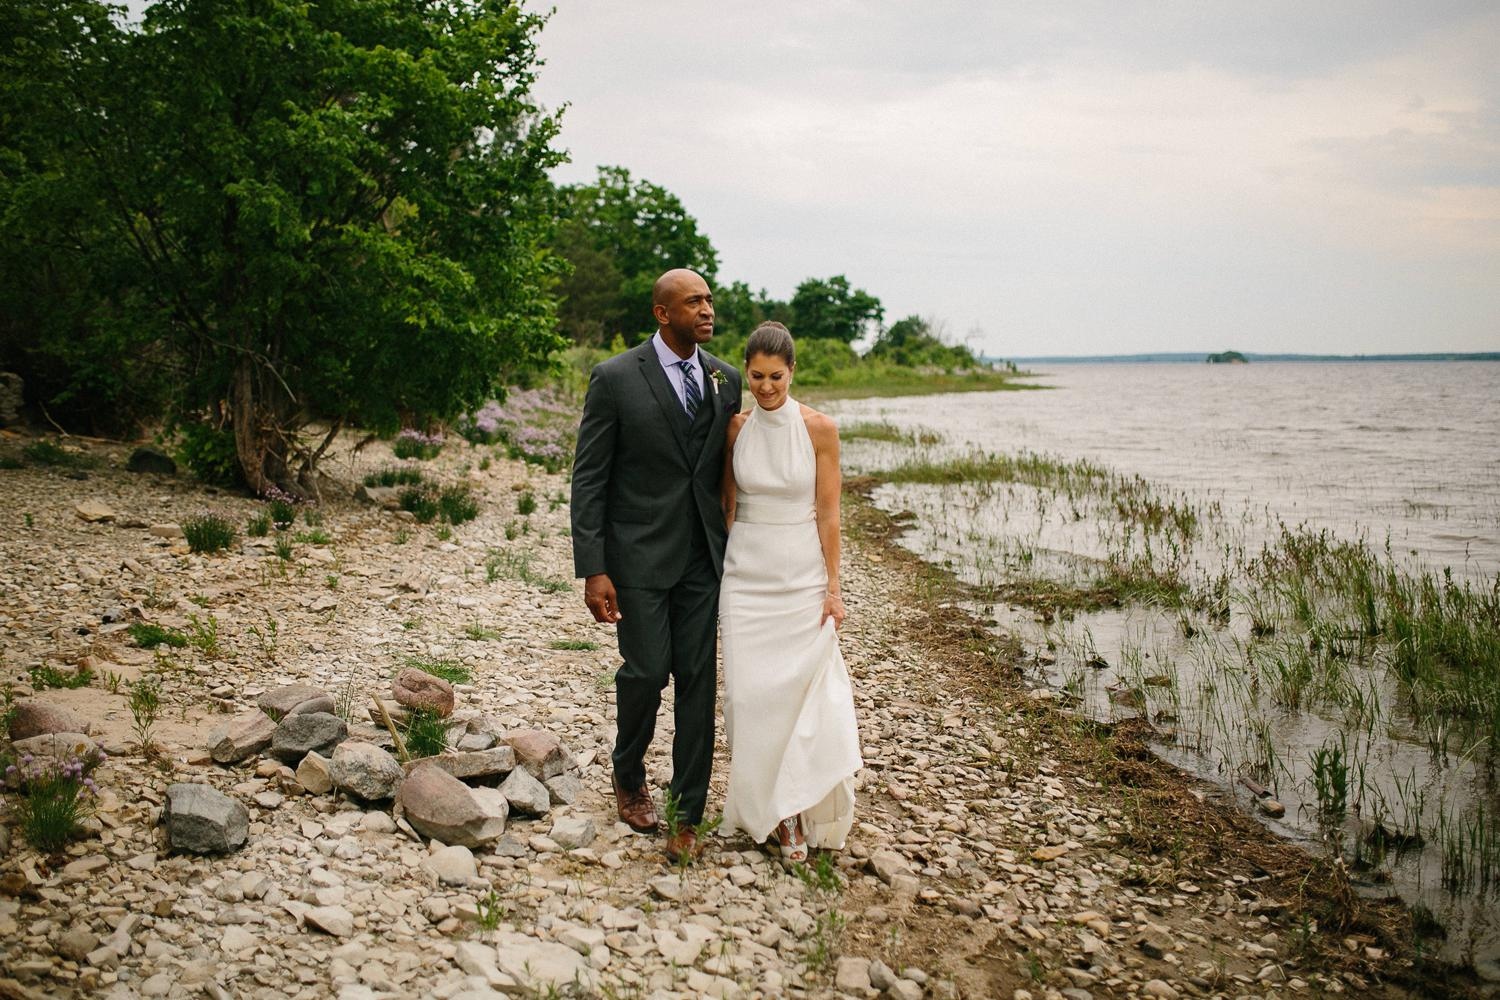 ottawa river small intimate wedding-155.jpg